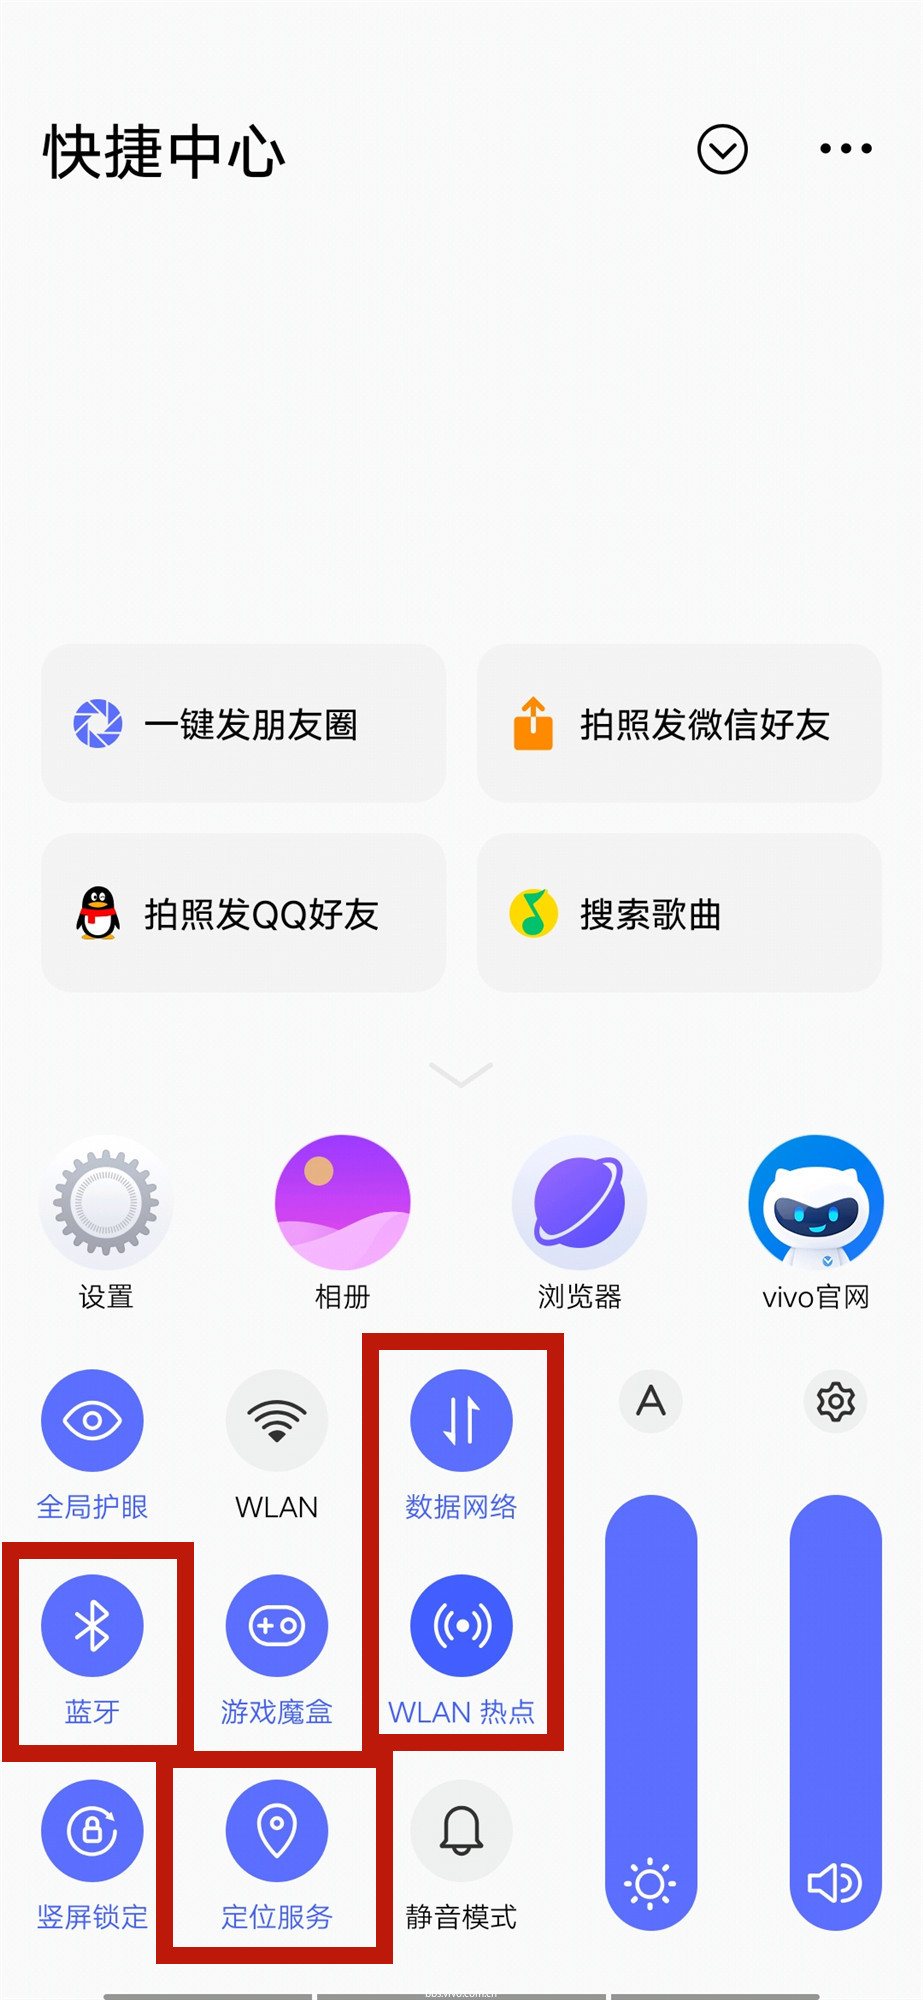 Screenshot_20190603_181531.jpg